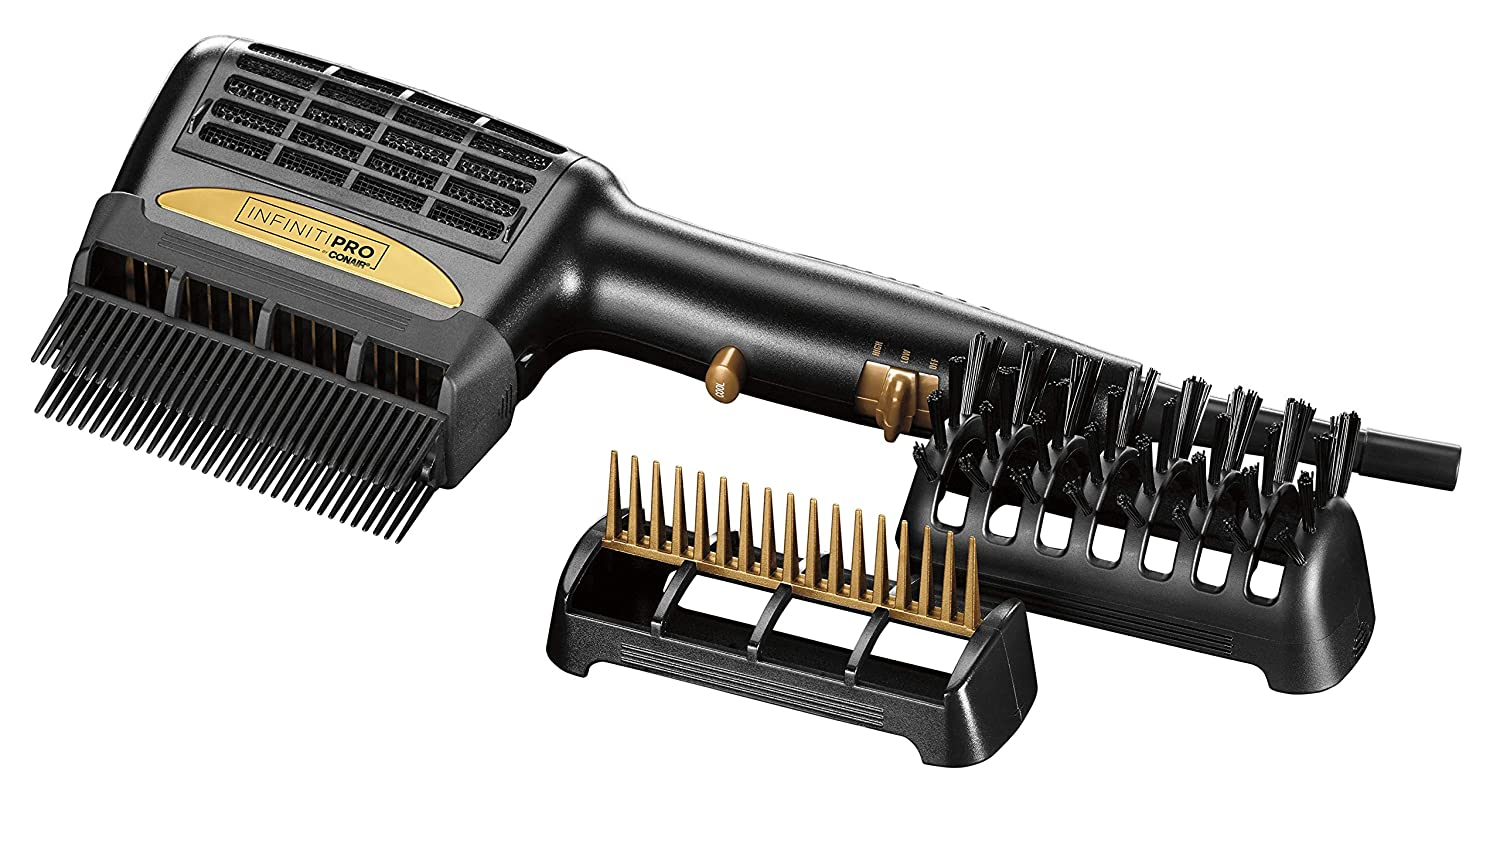 Infinitipro By Conair 1875W 3-in-1 Hair Dryer, One Step Style & Dry, Detangle/Straighten/Volumize